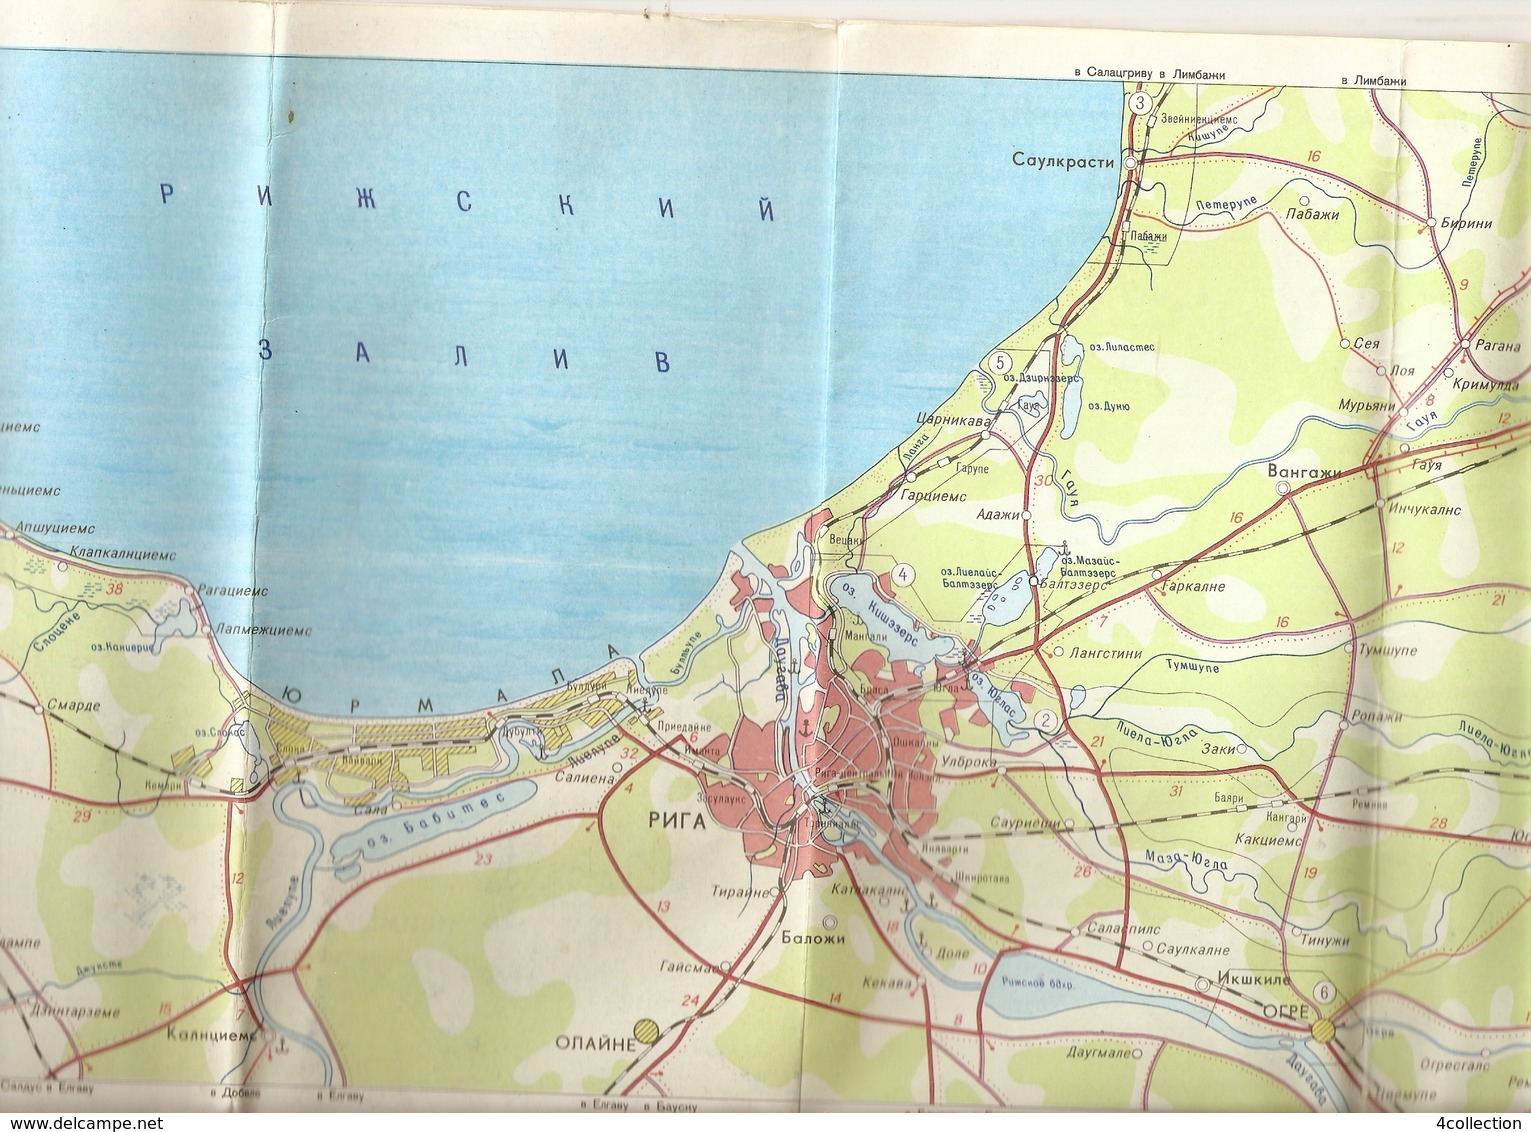 K. USSR Soviet Latvia Map Tourist Map - Scheme - Suburbs Of Riga And Jurmala - Weekedn Tourism 1980s - Geographical Maps